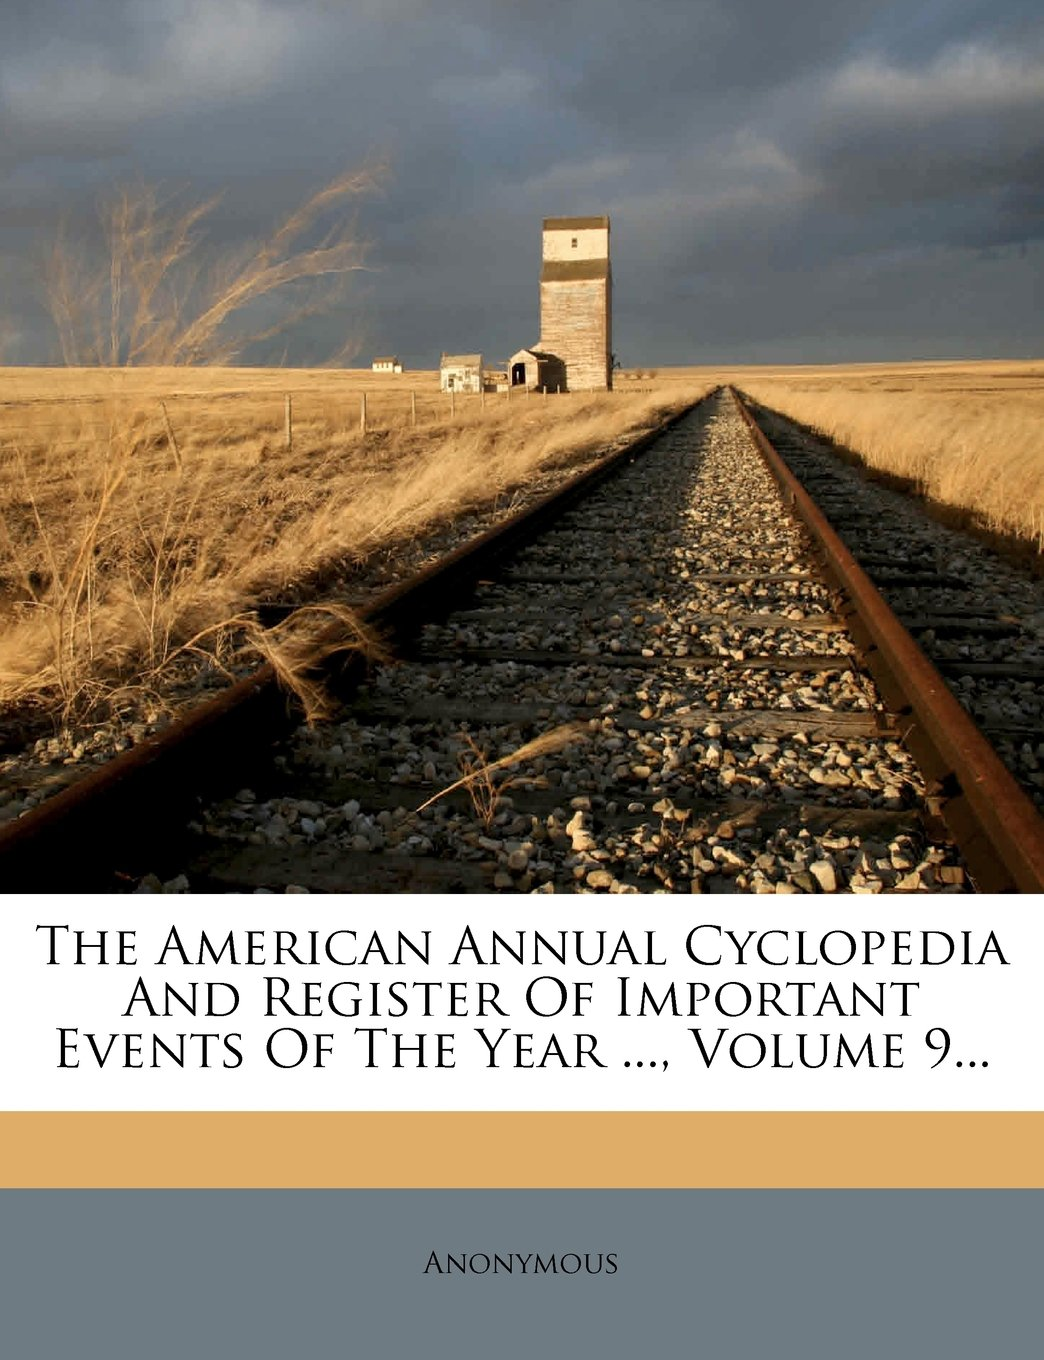 The American Annual Cyclopedia And Register Of Important Events Of The Year ..., Volume 9... pdf